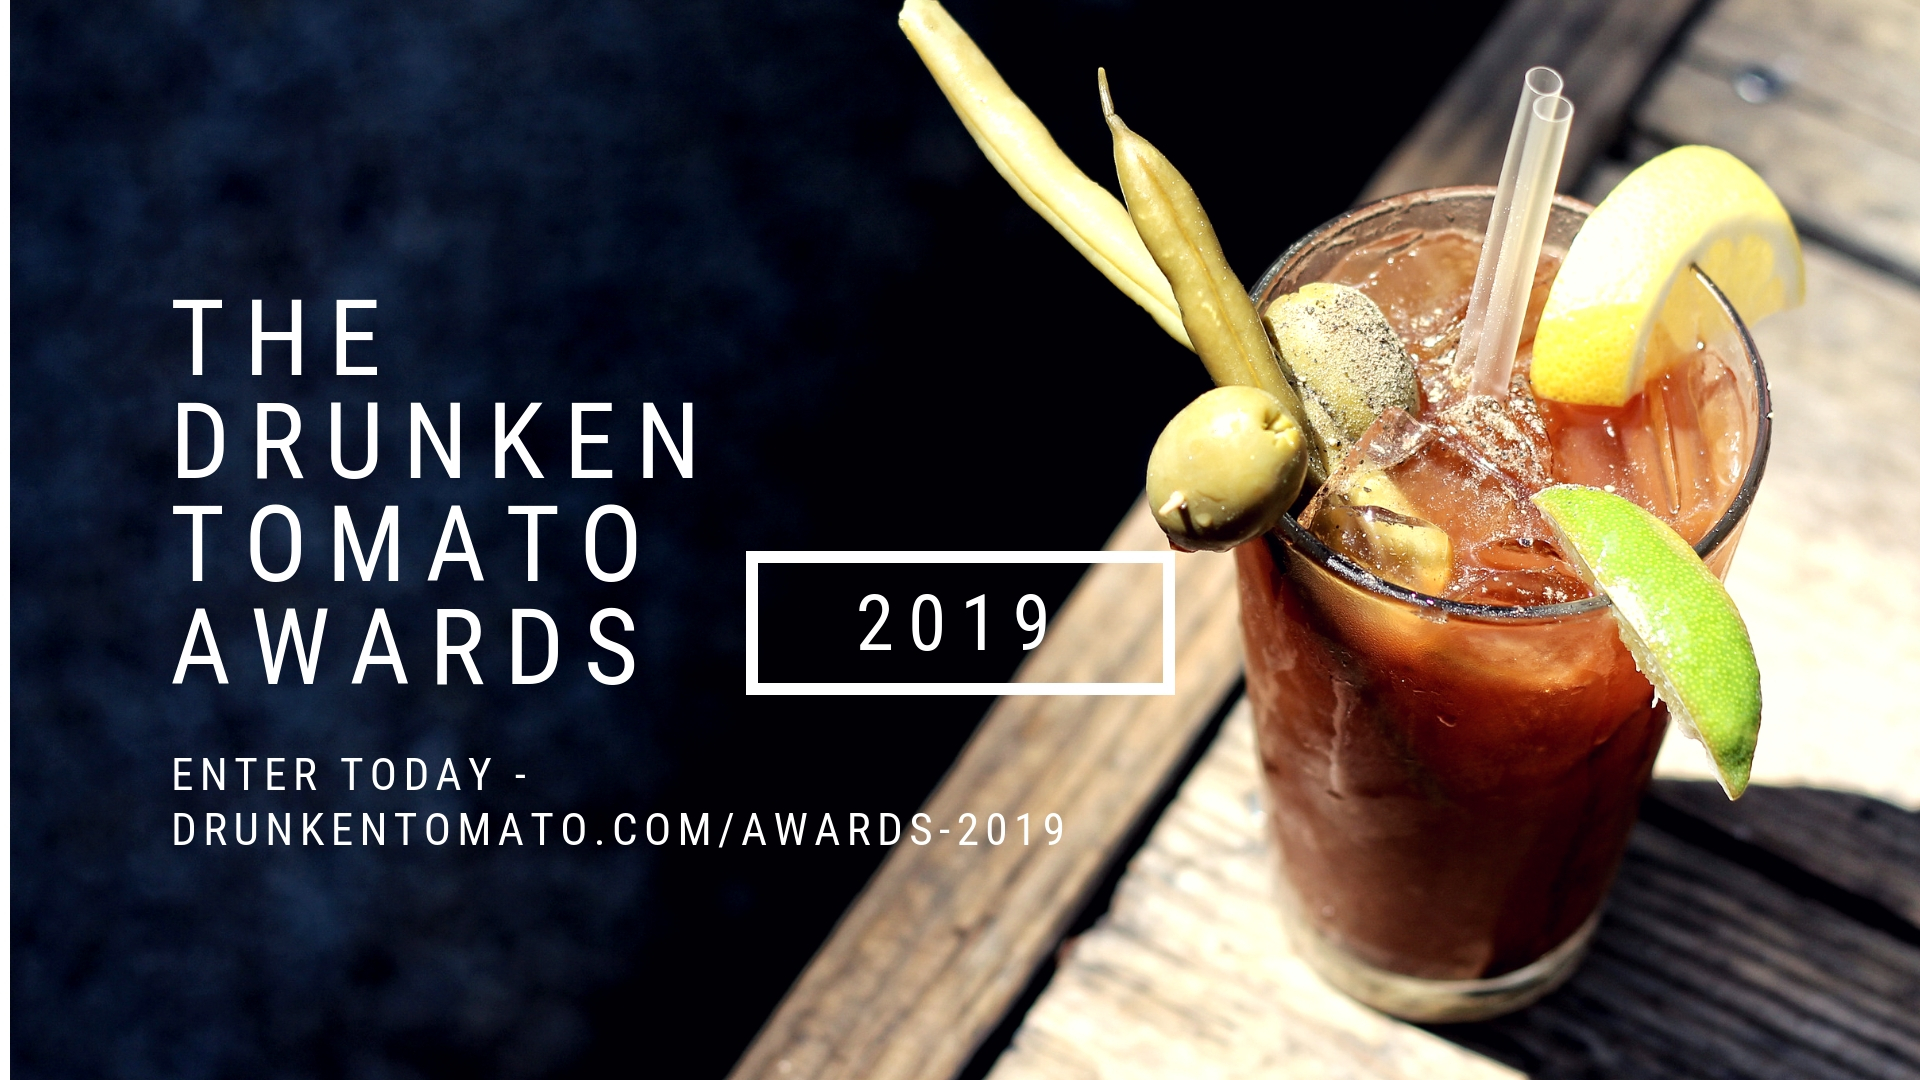 drunkentomatoawards2019.jpg